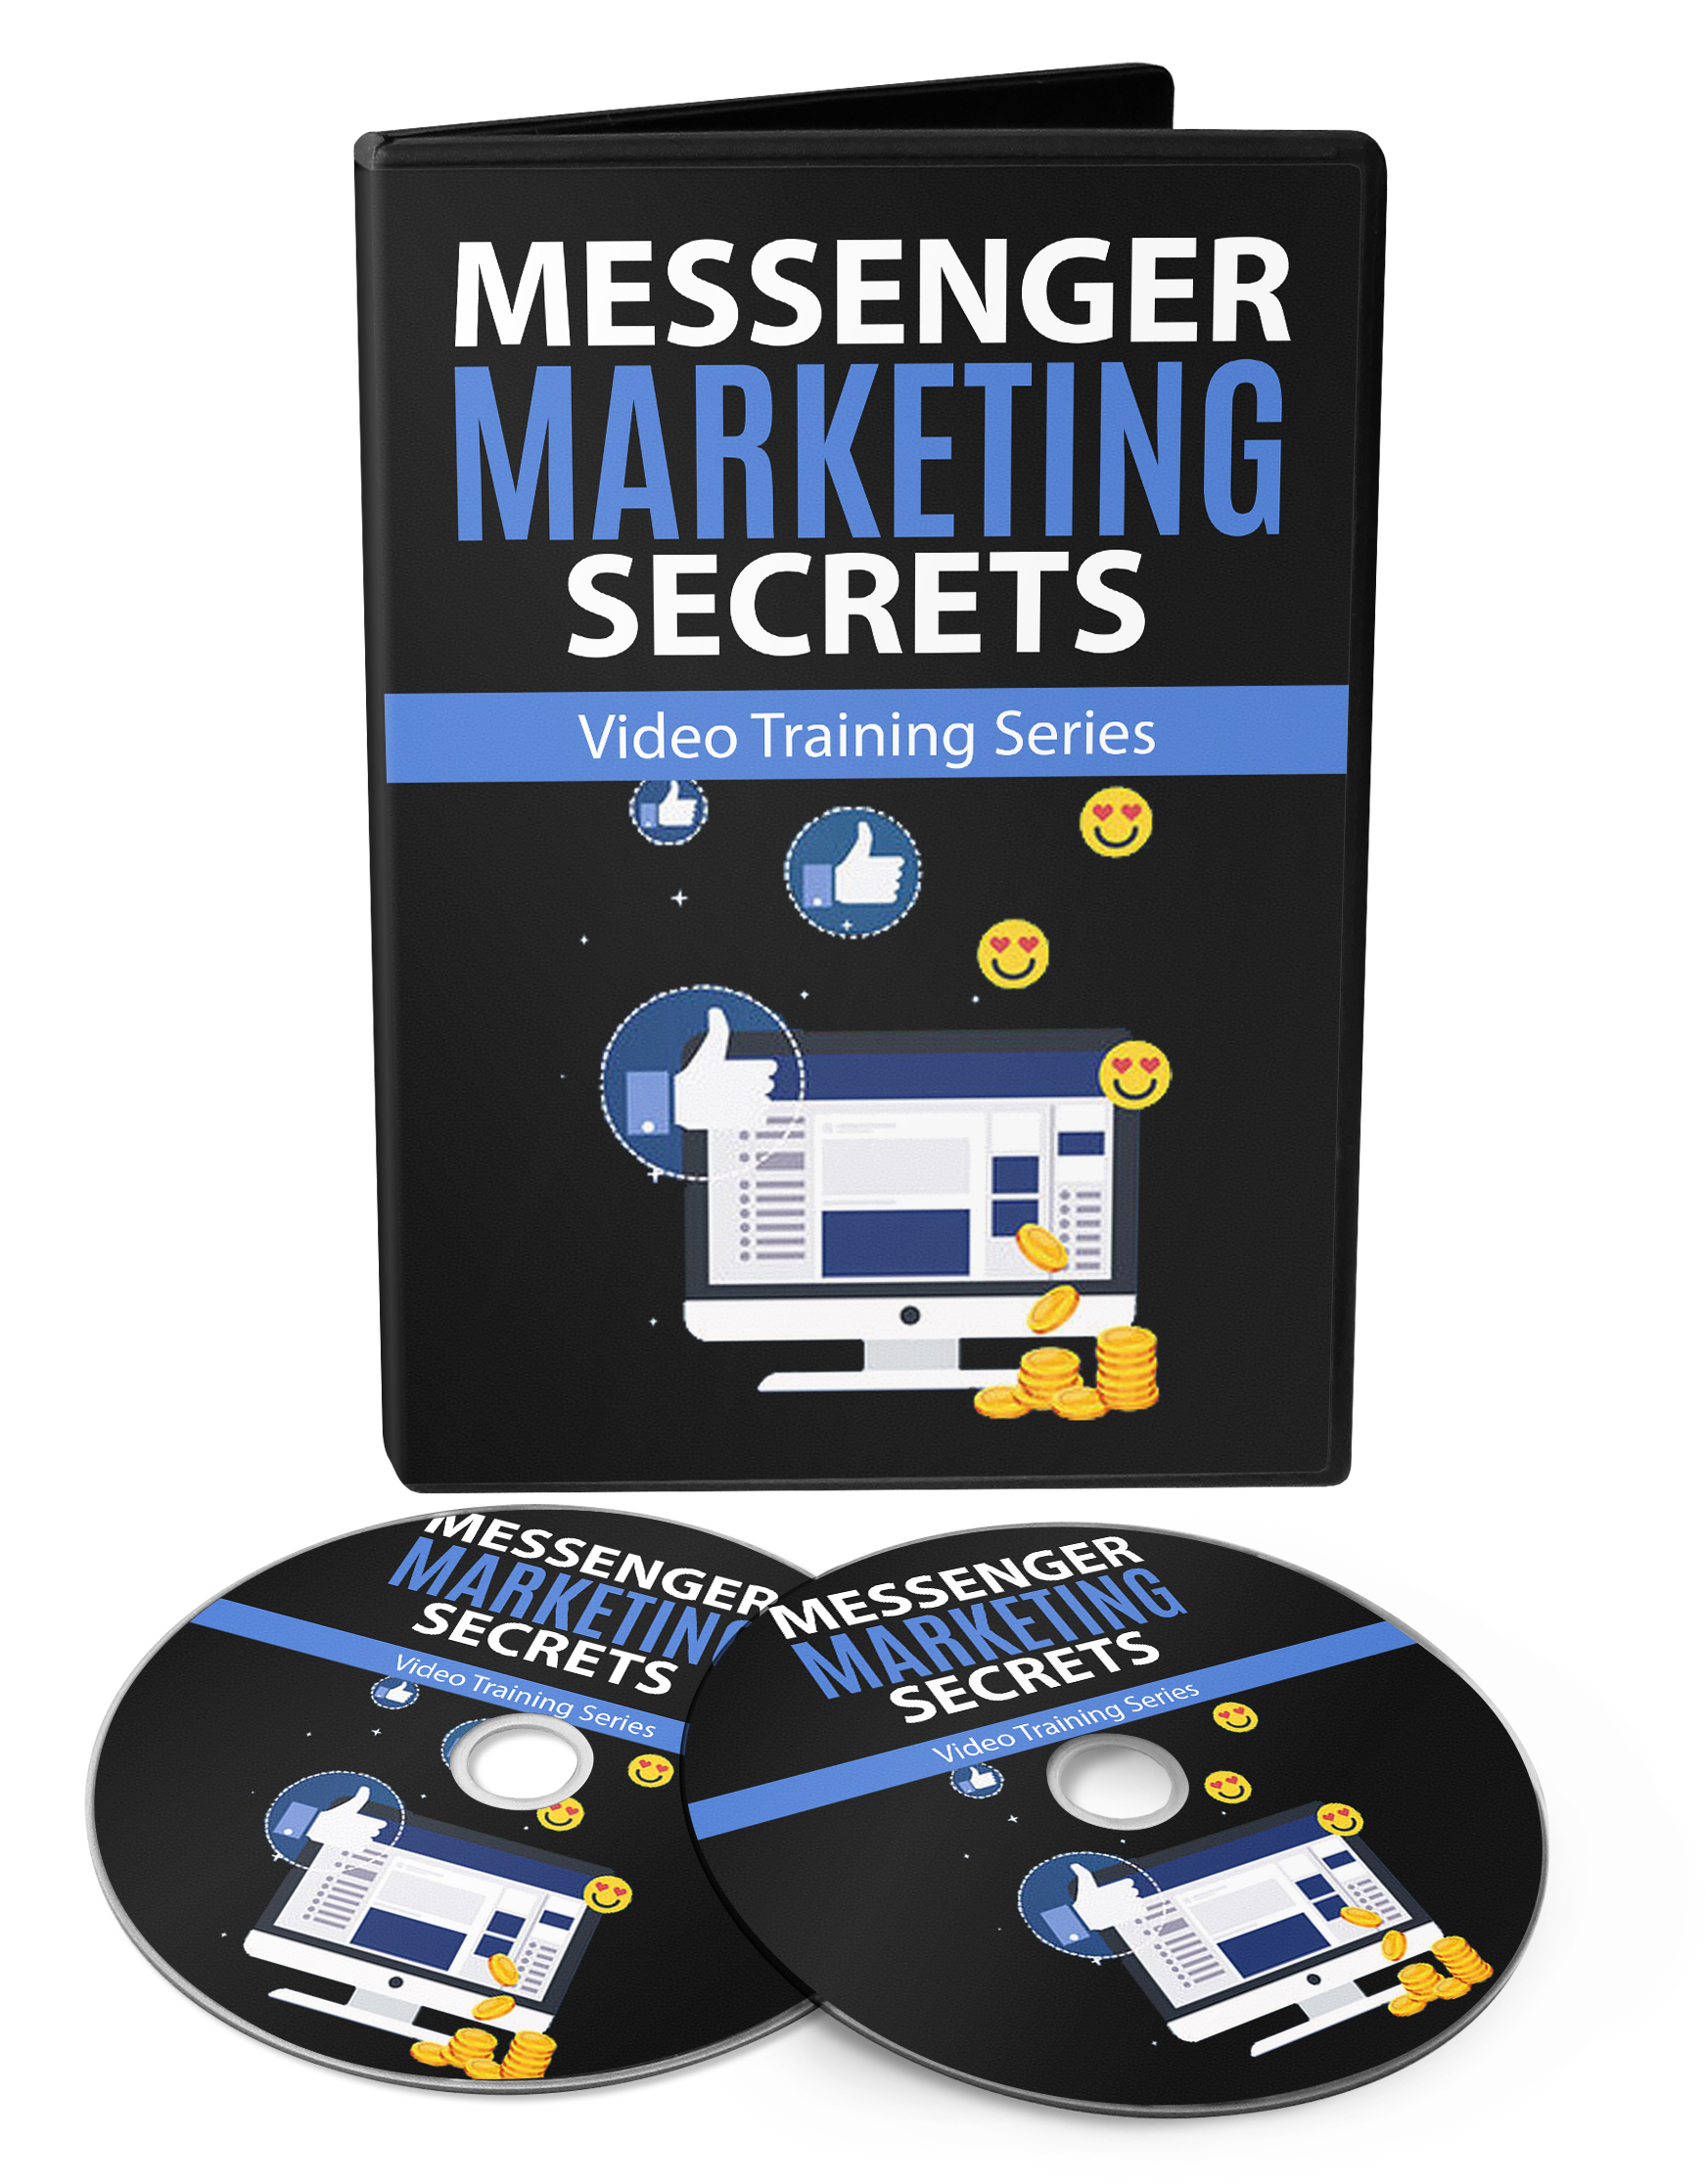 Messenger Marketing Secrets